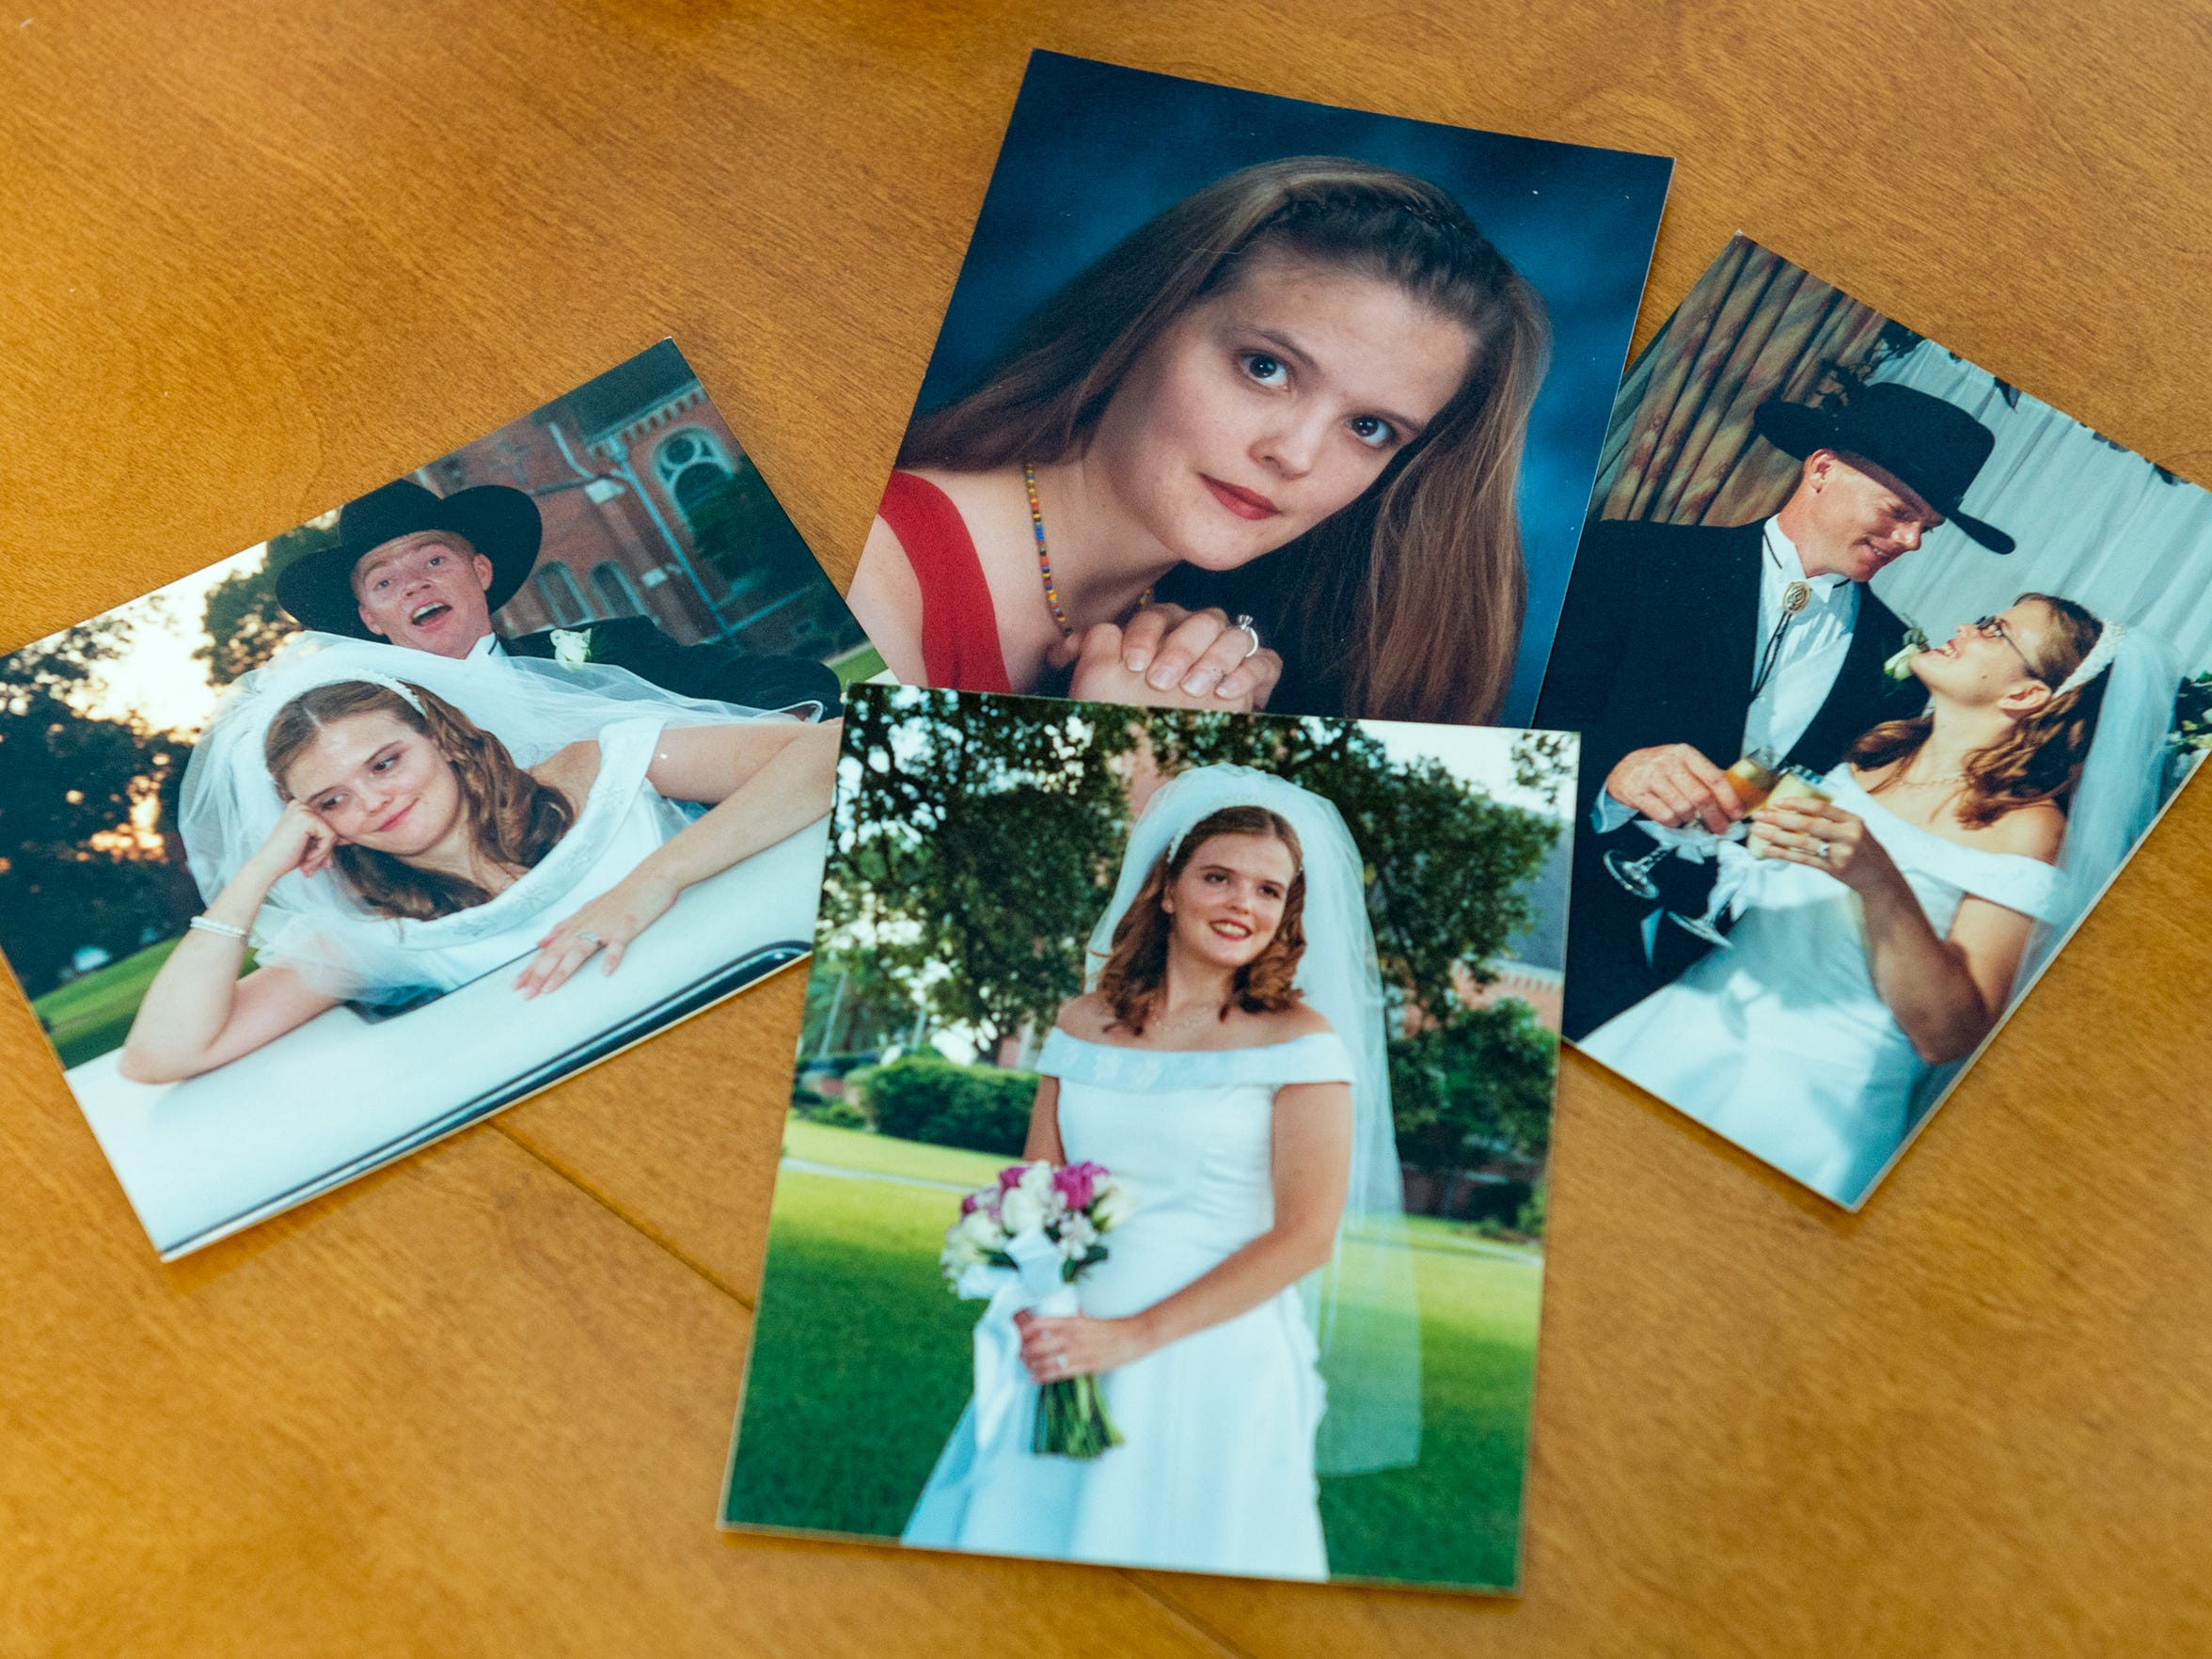 This is a sampling of photos from Lana and Evan Edmondson's incredible 18-year relationship.